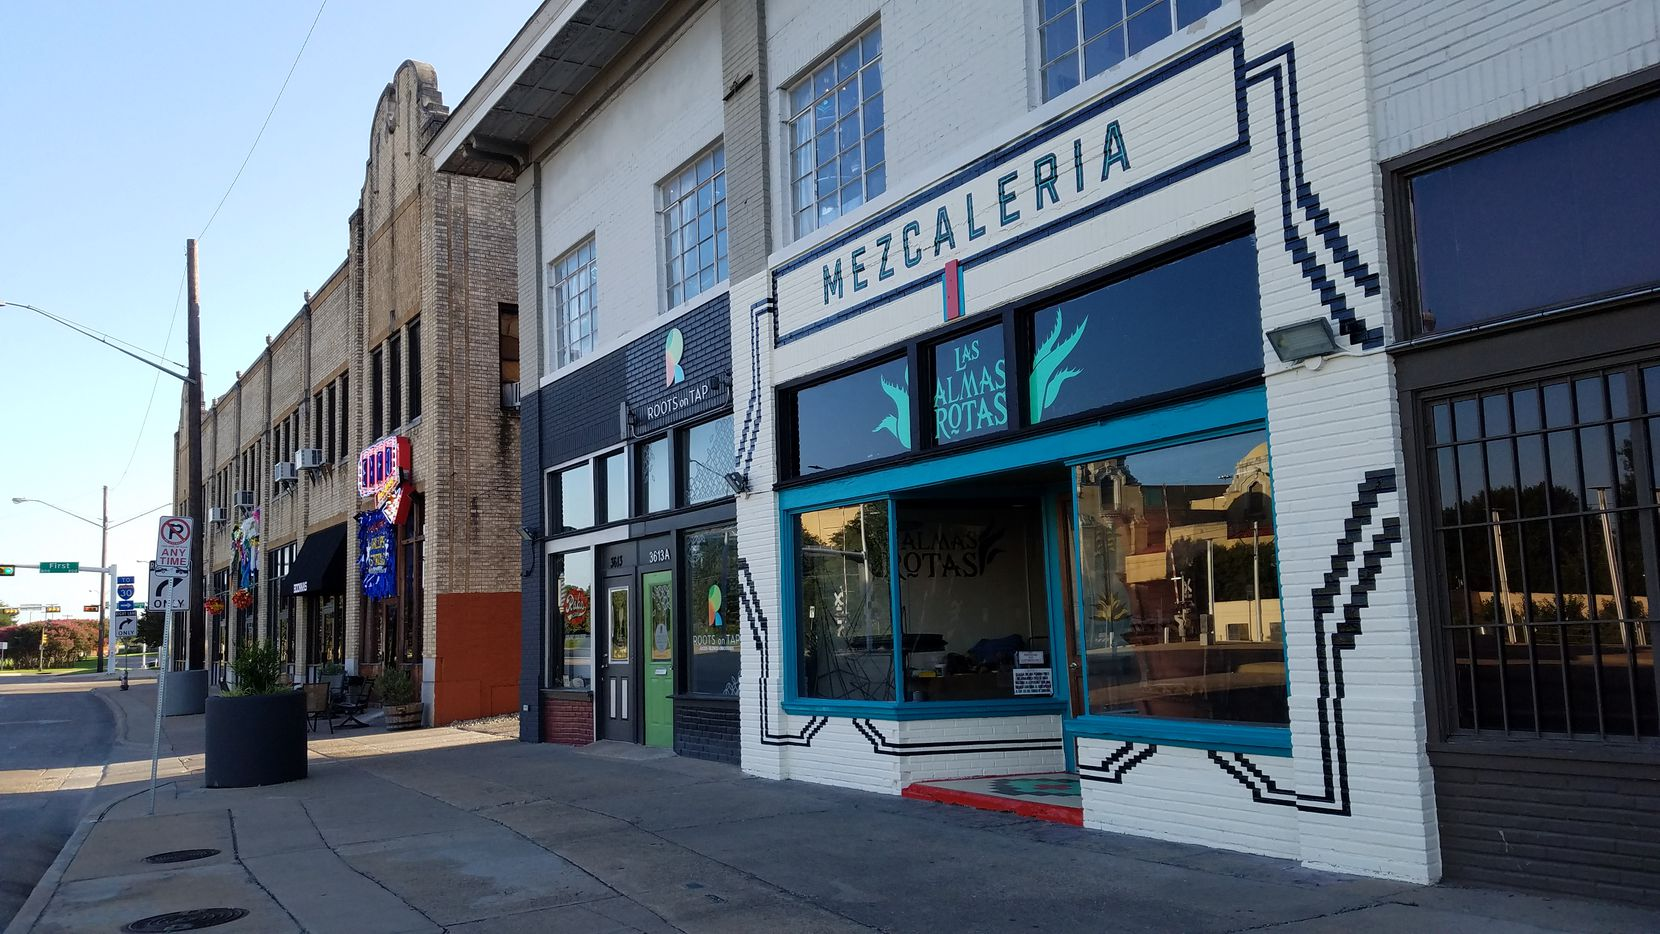 Dallas' first full-fledged mezcaleria, Las Almas Rotas, hopes to officially open this weekend.